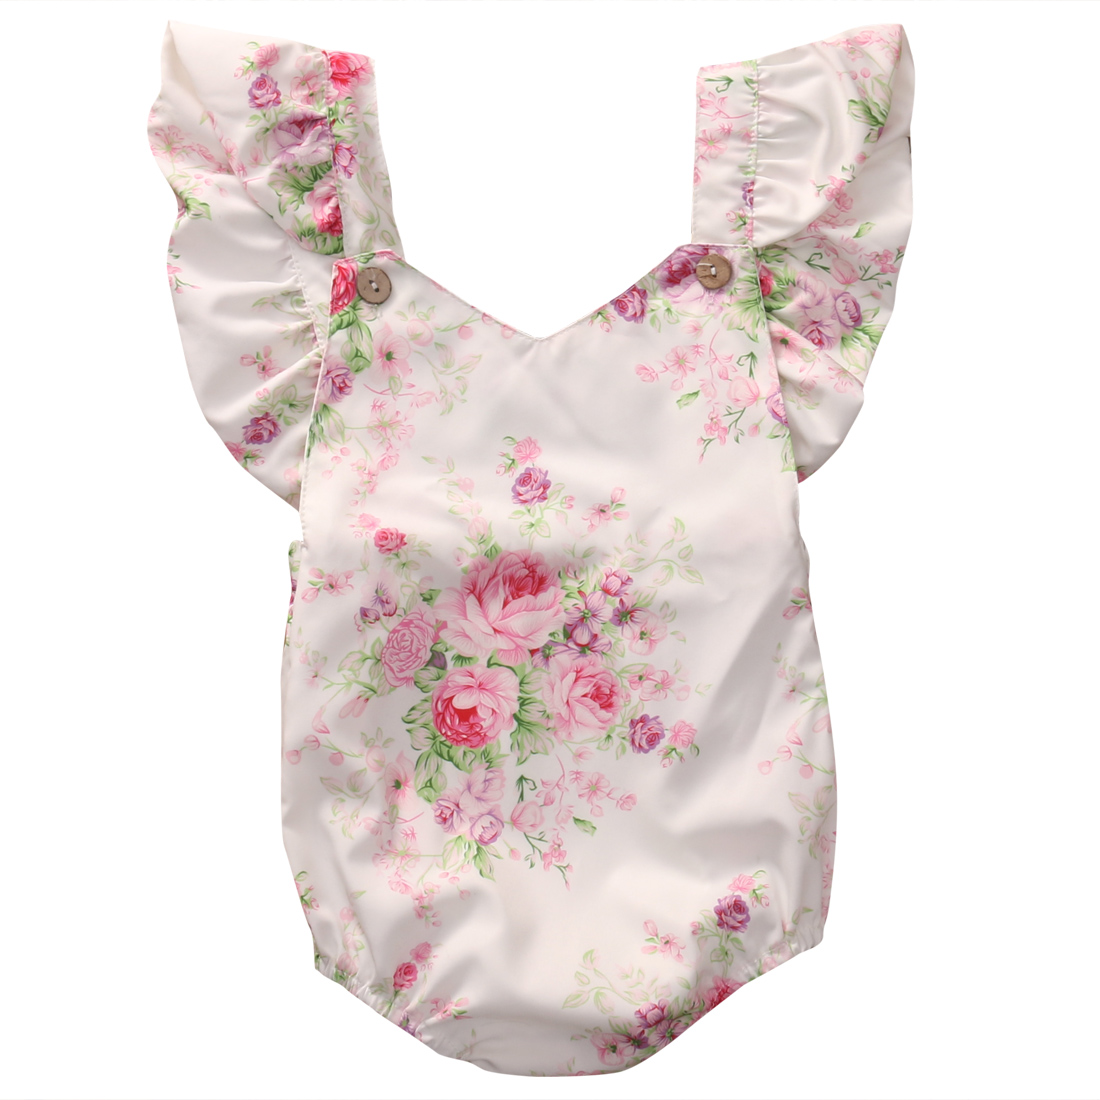 Cute Floral Baby Romper Newborn Infant Baby Girls Summer V-neck Ruffles Jumpsuit Toddler Kids Outfits Princess Sunsuit newborn infant baby clothes girls love floral strap romper jumpsuit outfit sunsuit summer cotton baby onesie girls clothing